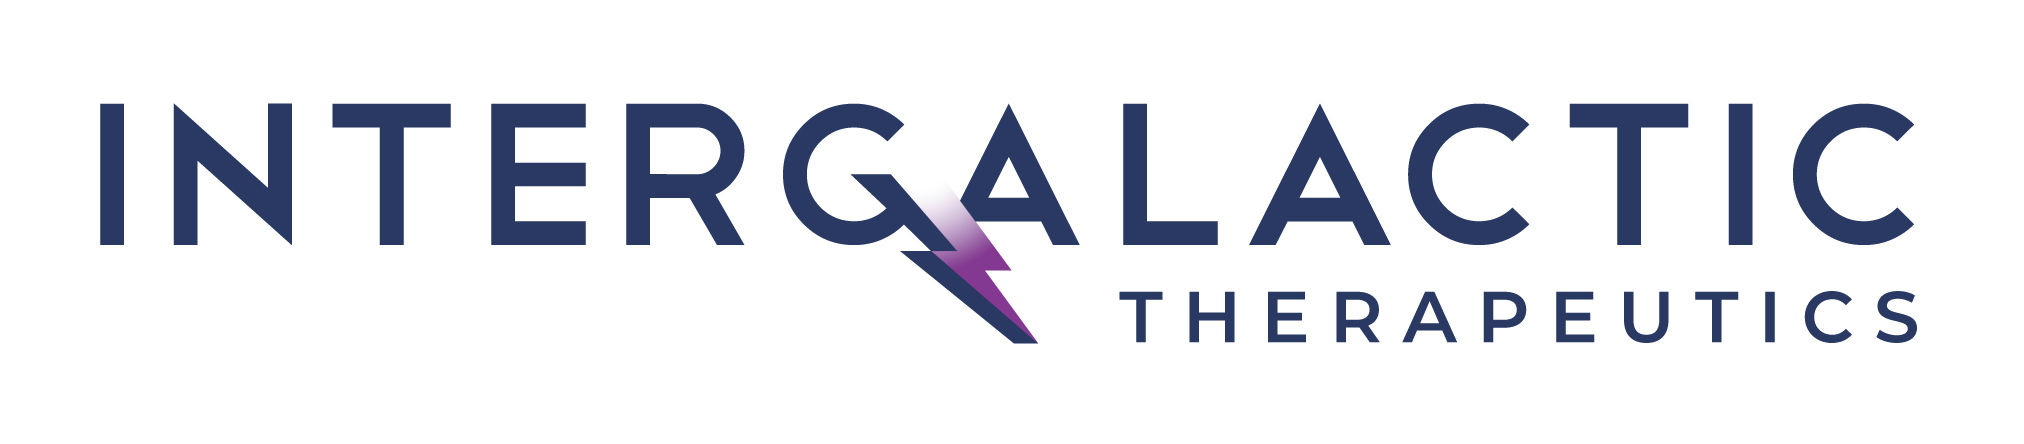 Intergalactic Therapeutics Logo